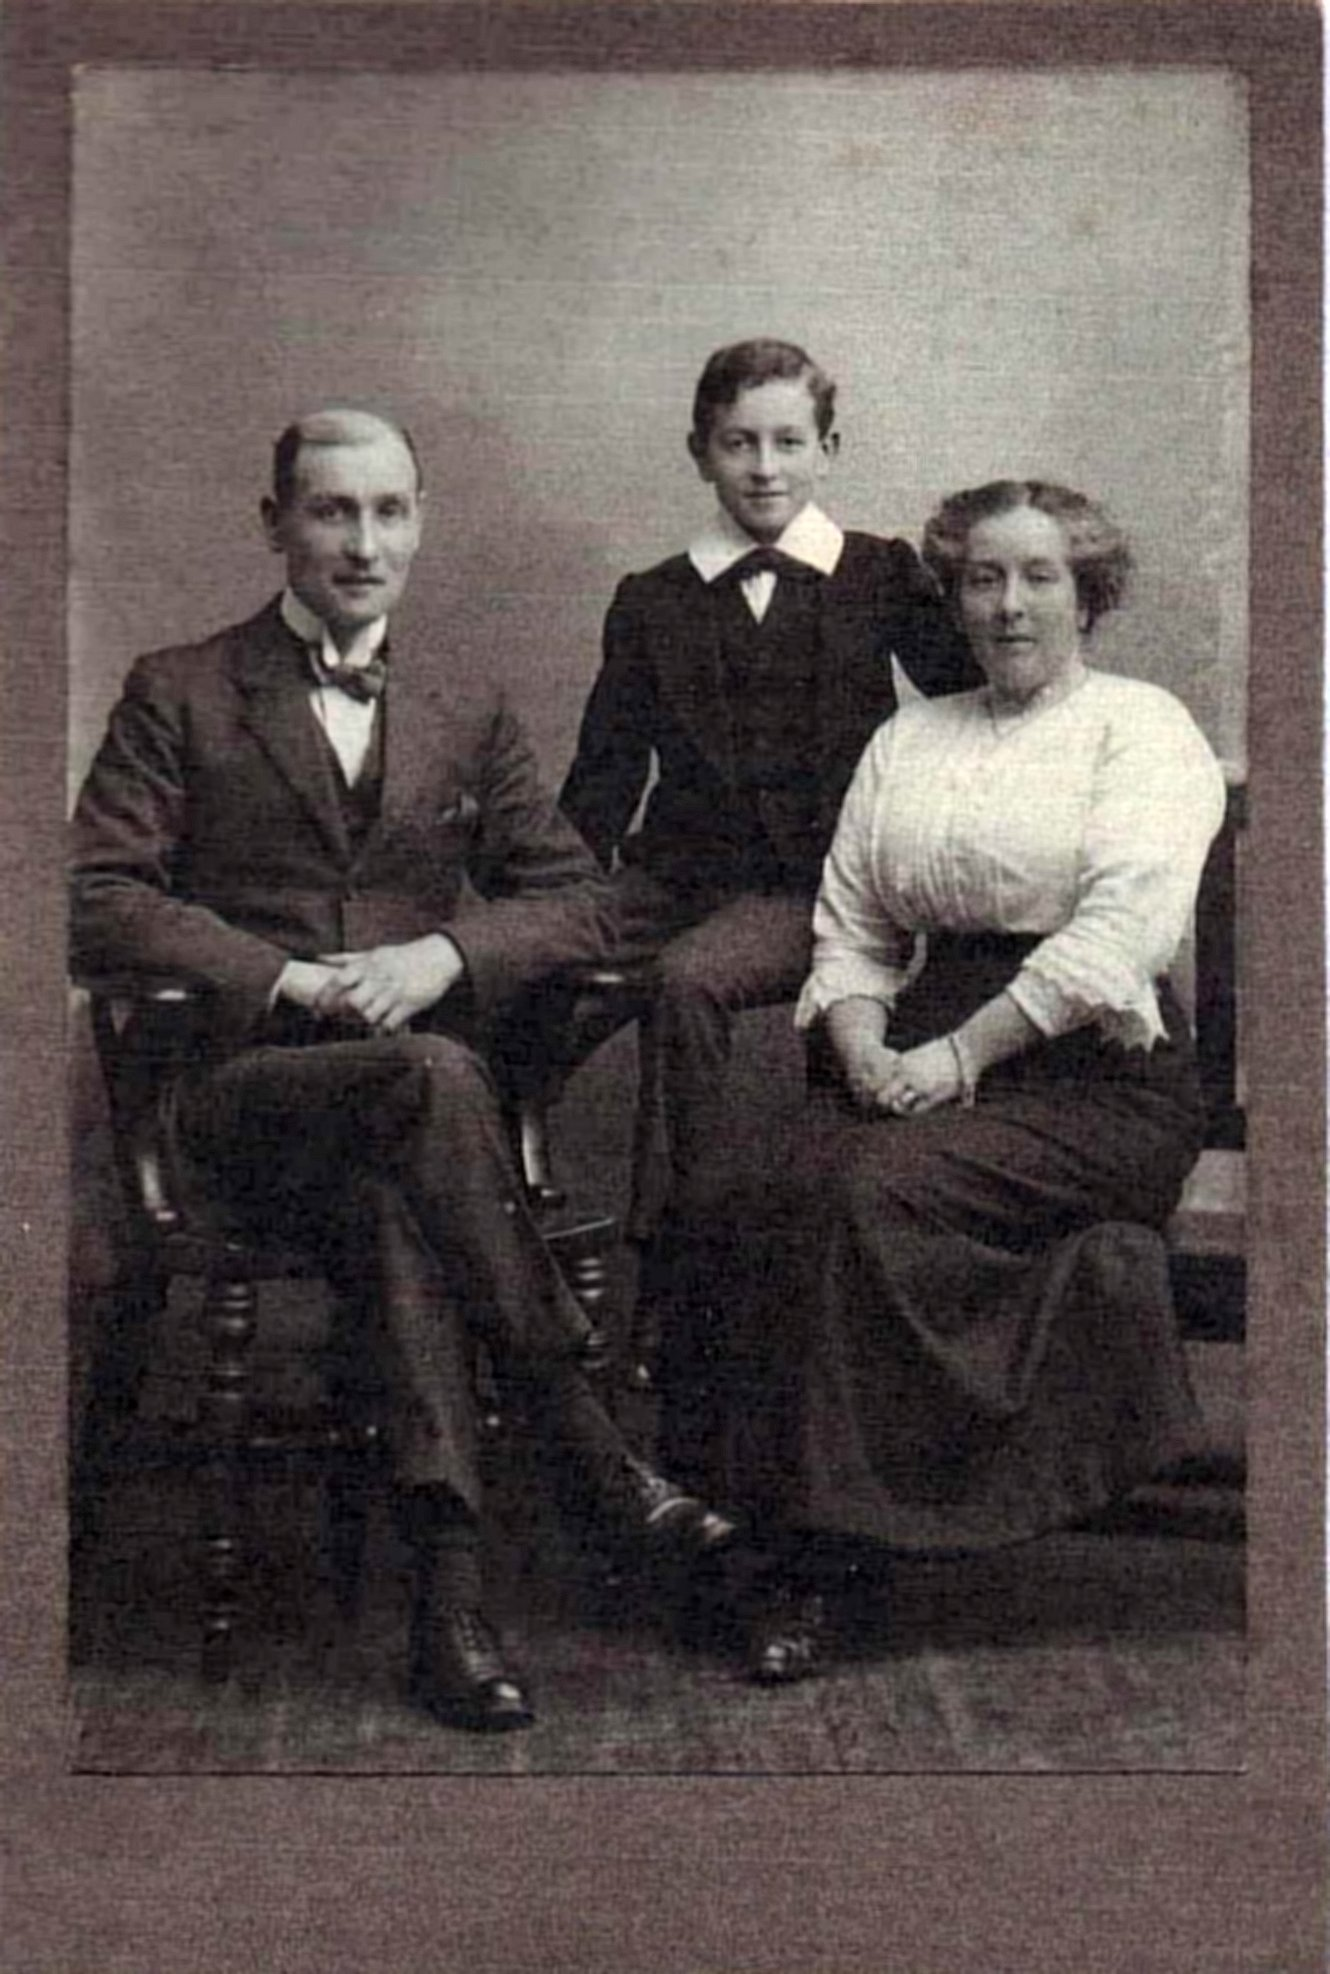 [Thomas, Reginald and Eliza Townsend]